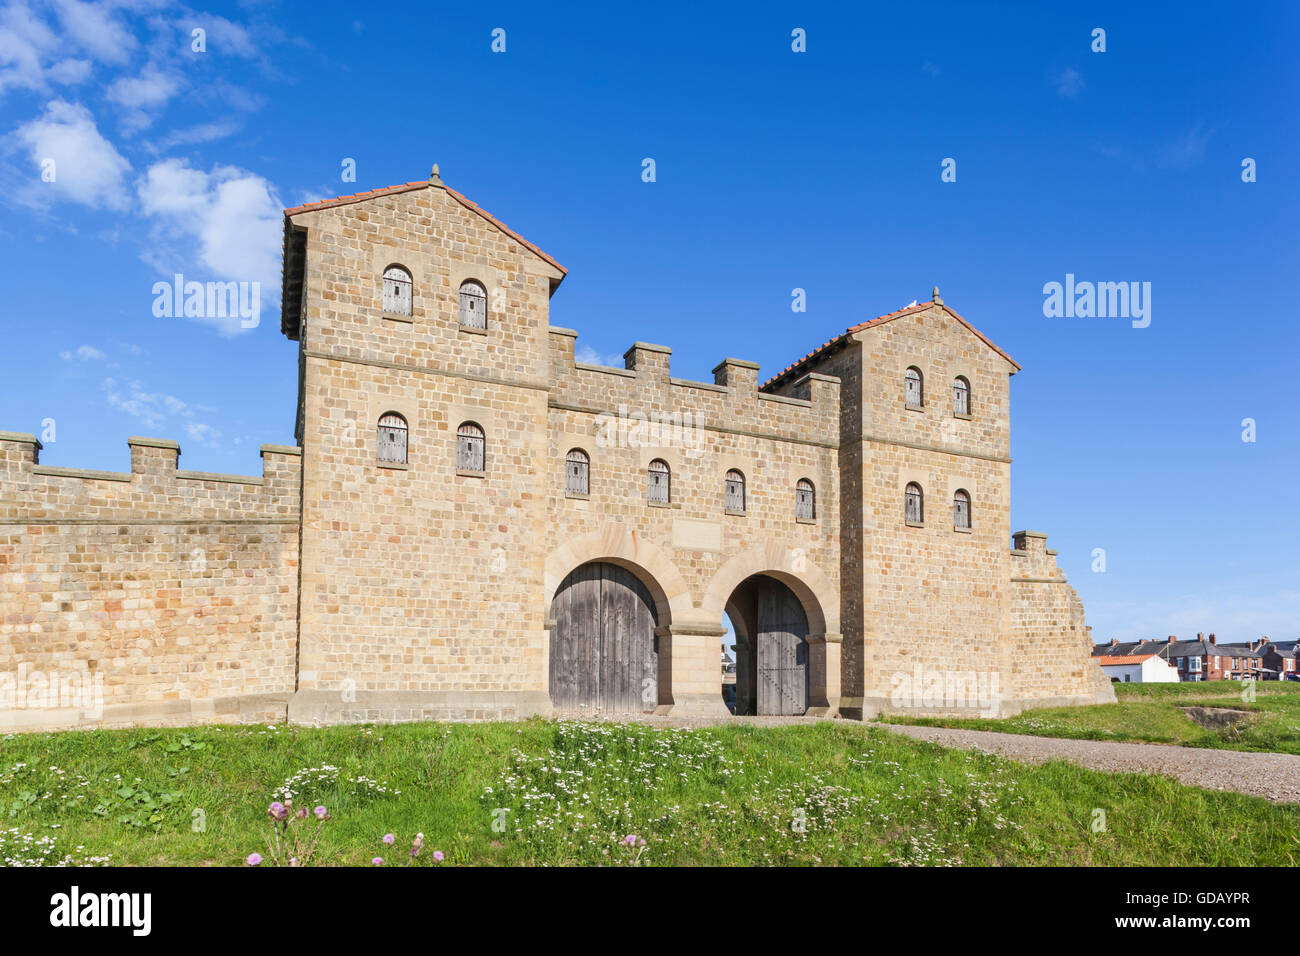 England,Tyne and Wear,South Shields,Arbeia Roman Fort and Museum - Stock Image